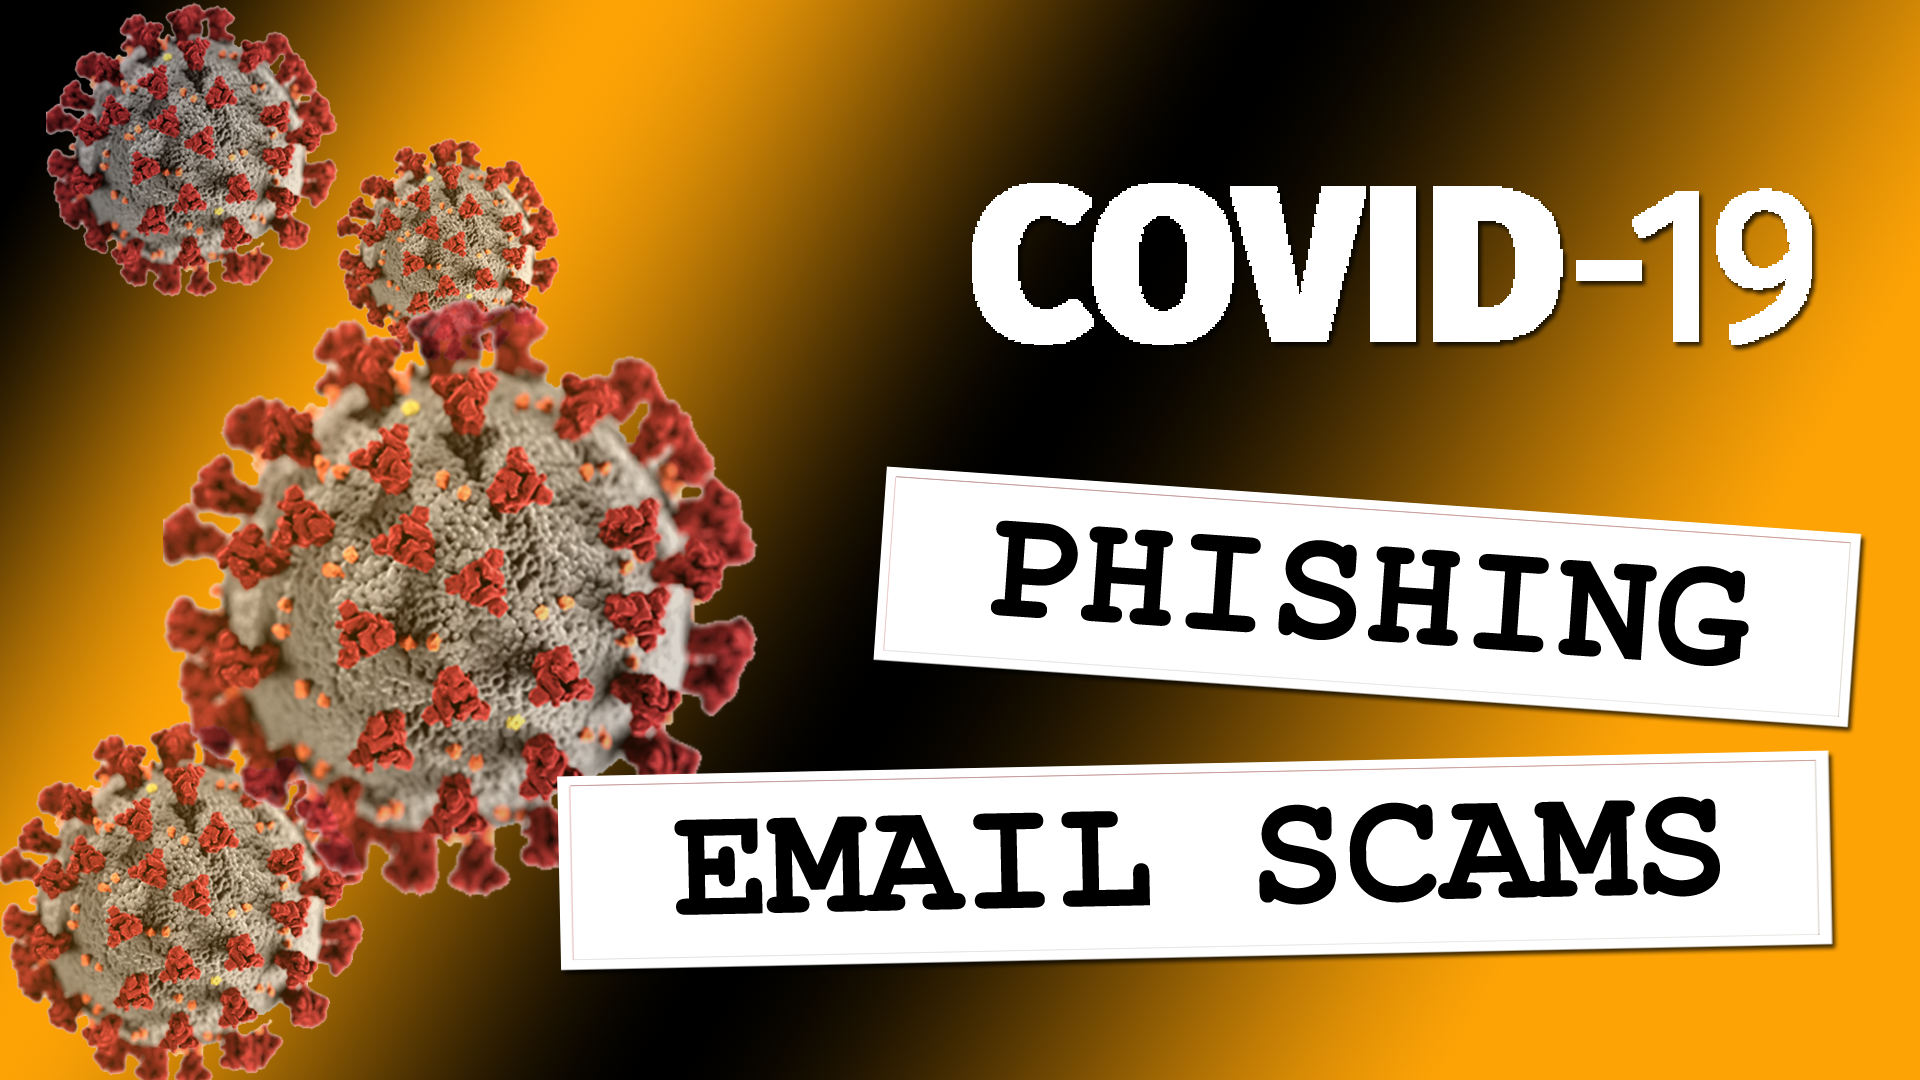 COVID-19 Phishing Email Scams